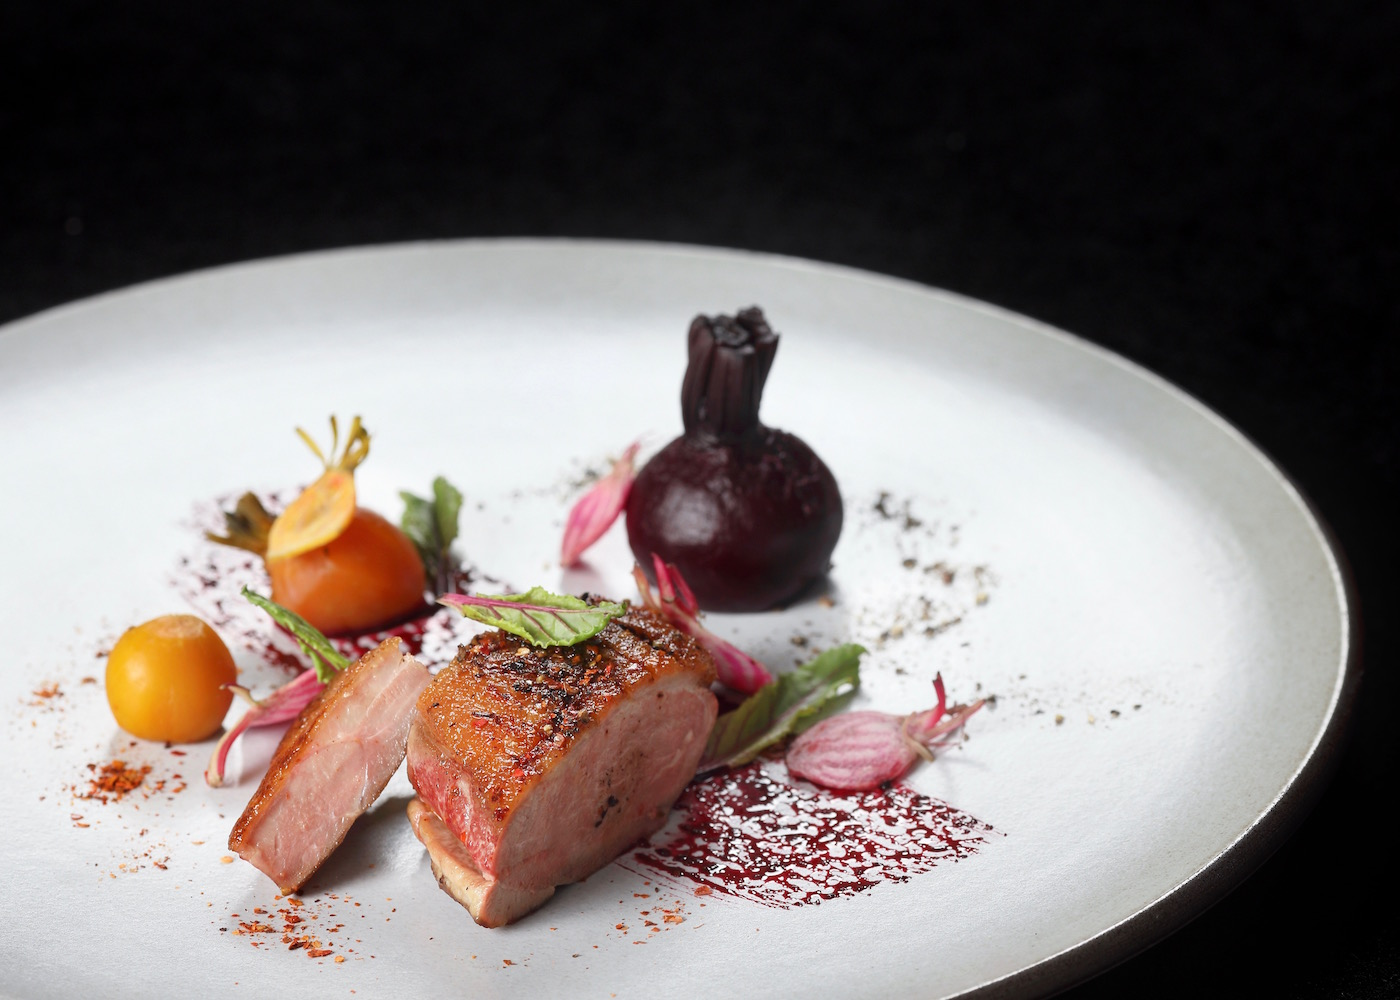 Dine & wine with French delicacies at The Restaurant